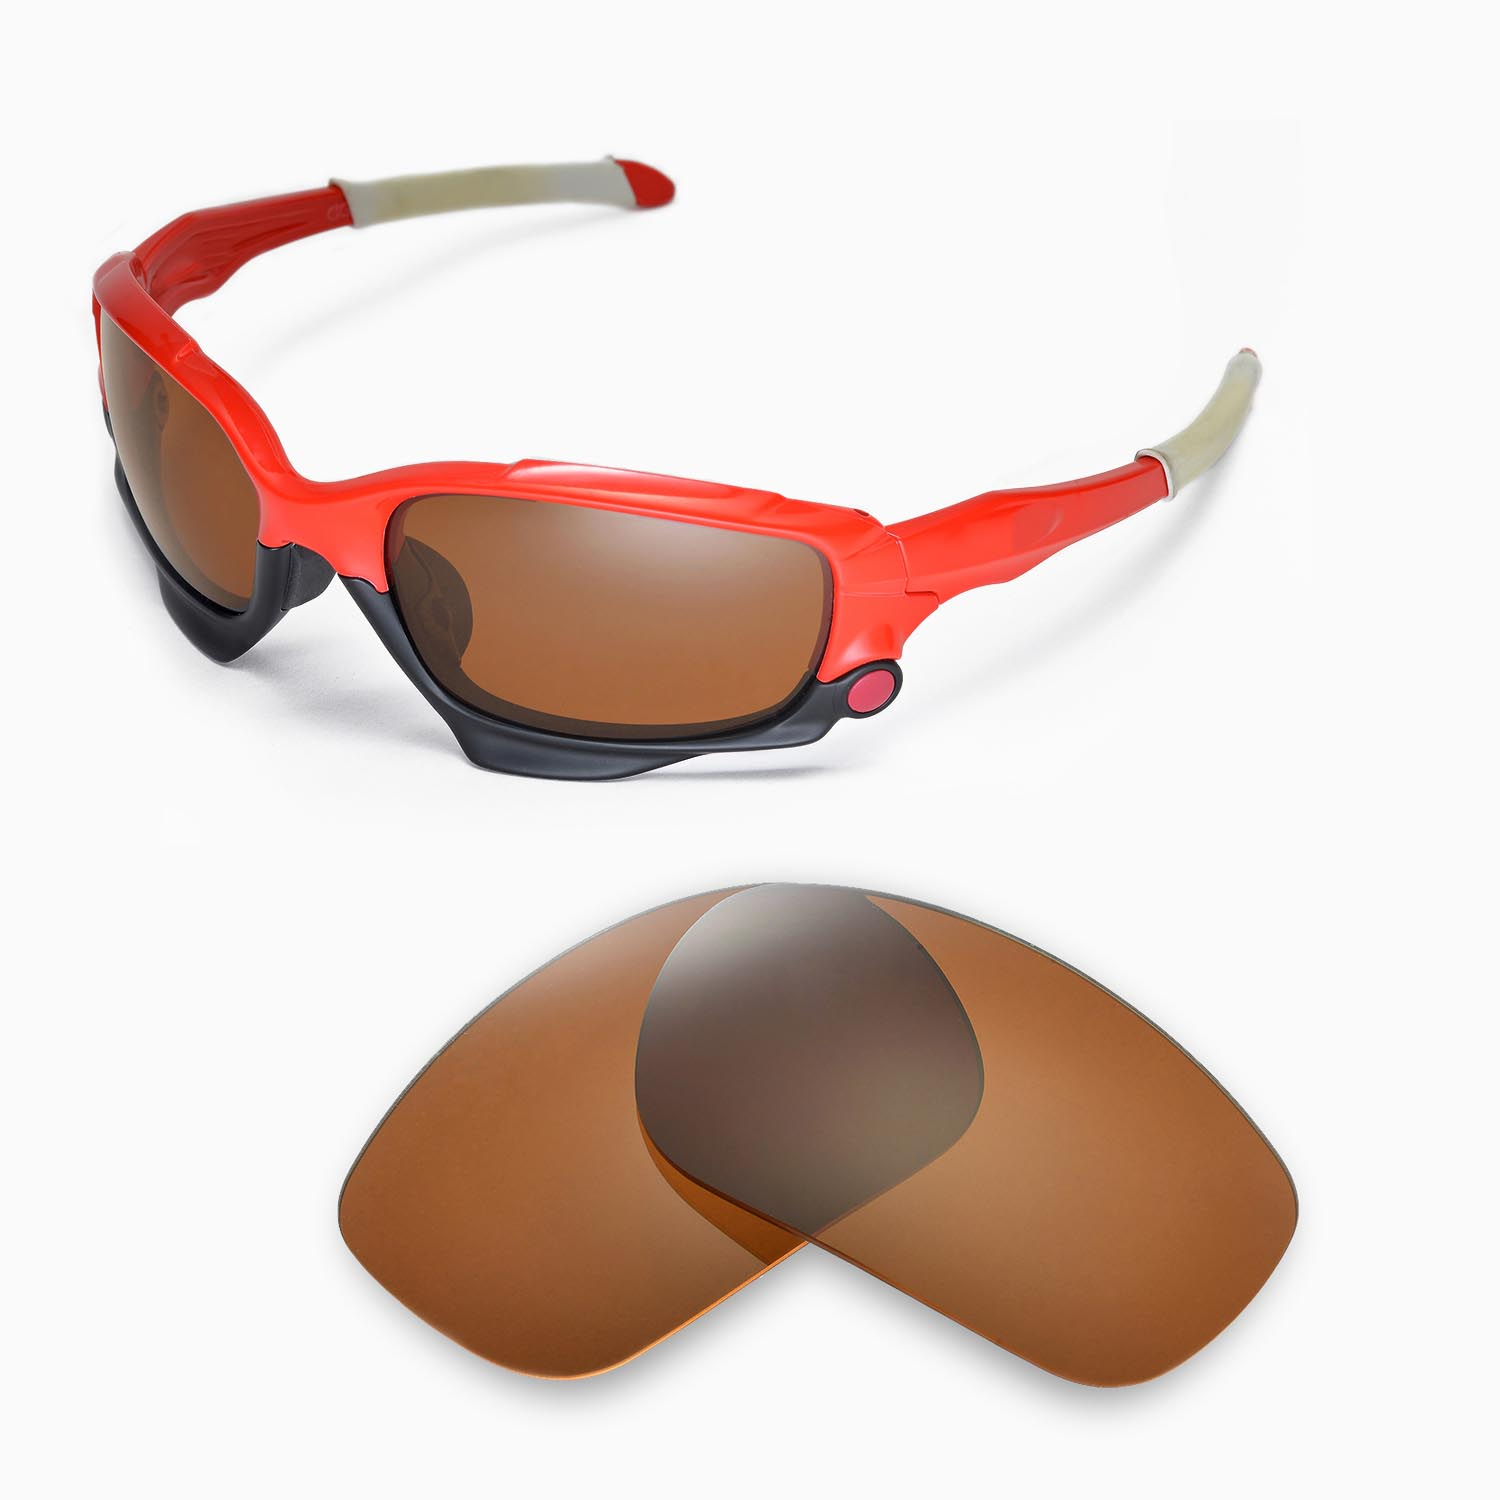 f04082b1a7e Details about New Walleva Polarized Brown Replacement Lenses For Oakley  Jawbone Sunglasses